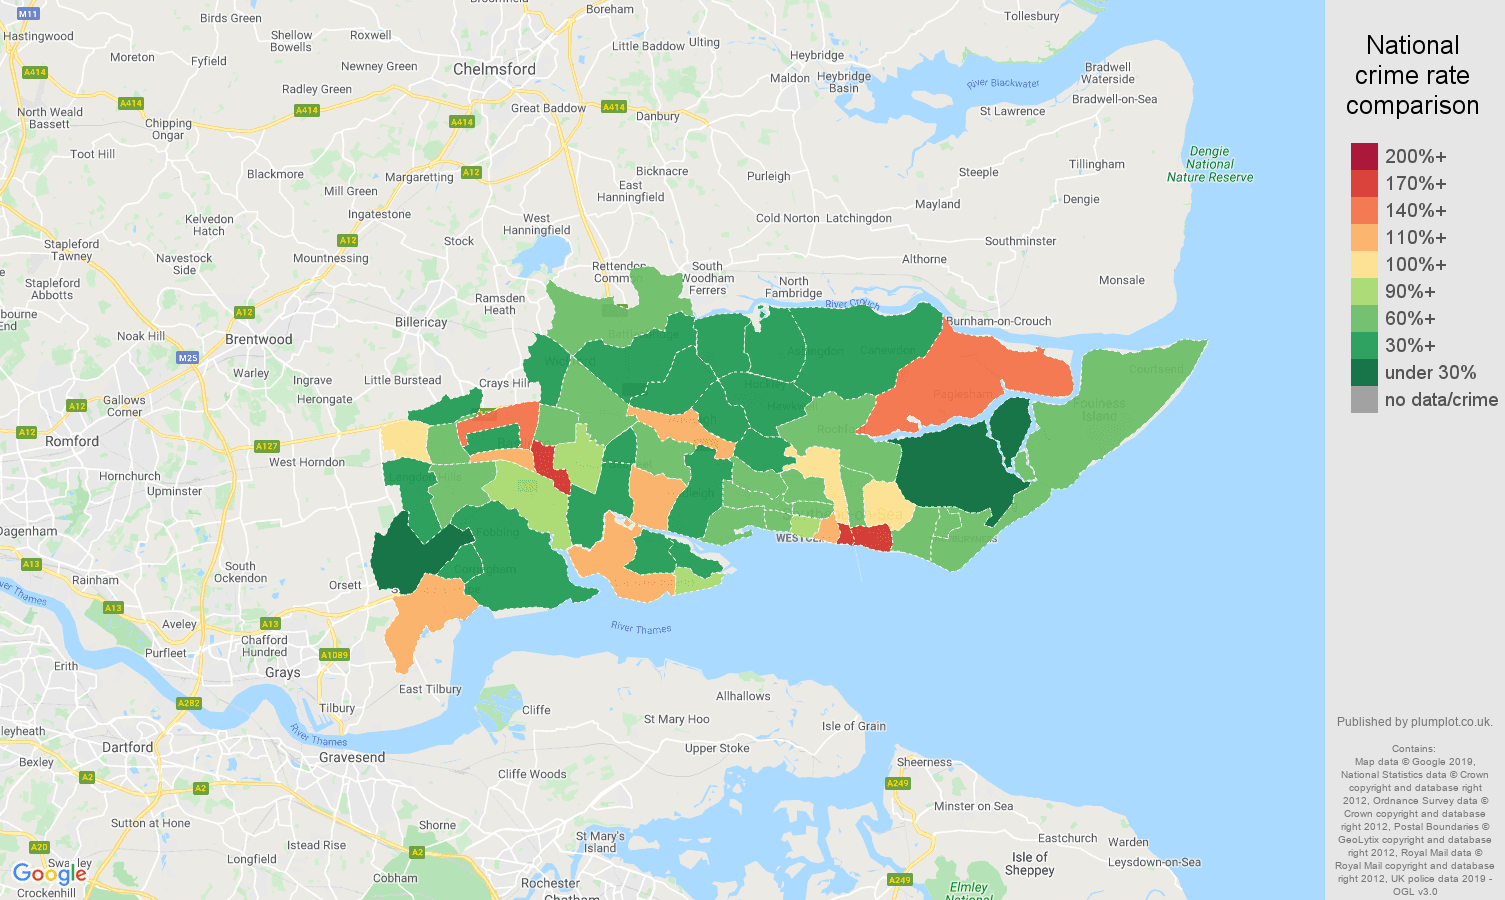 Southend on Sea other theft crime rate comparison map